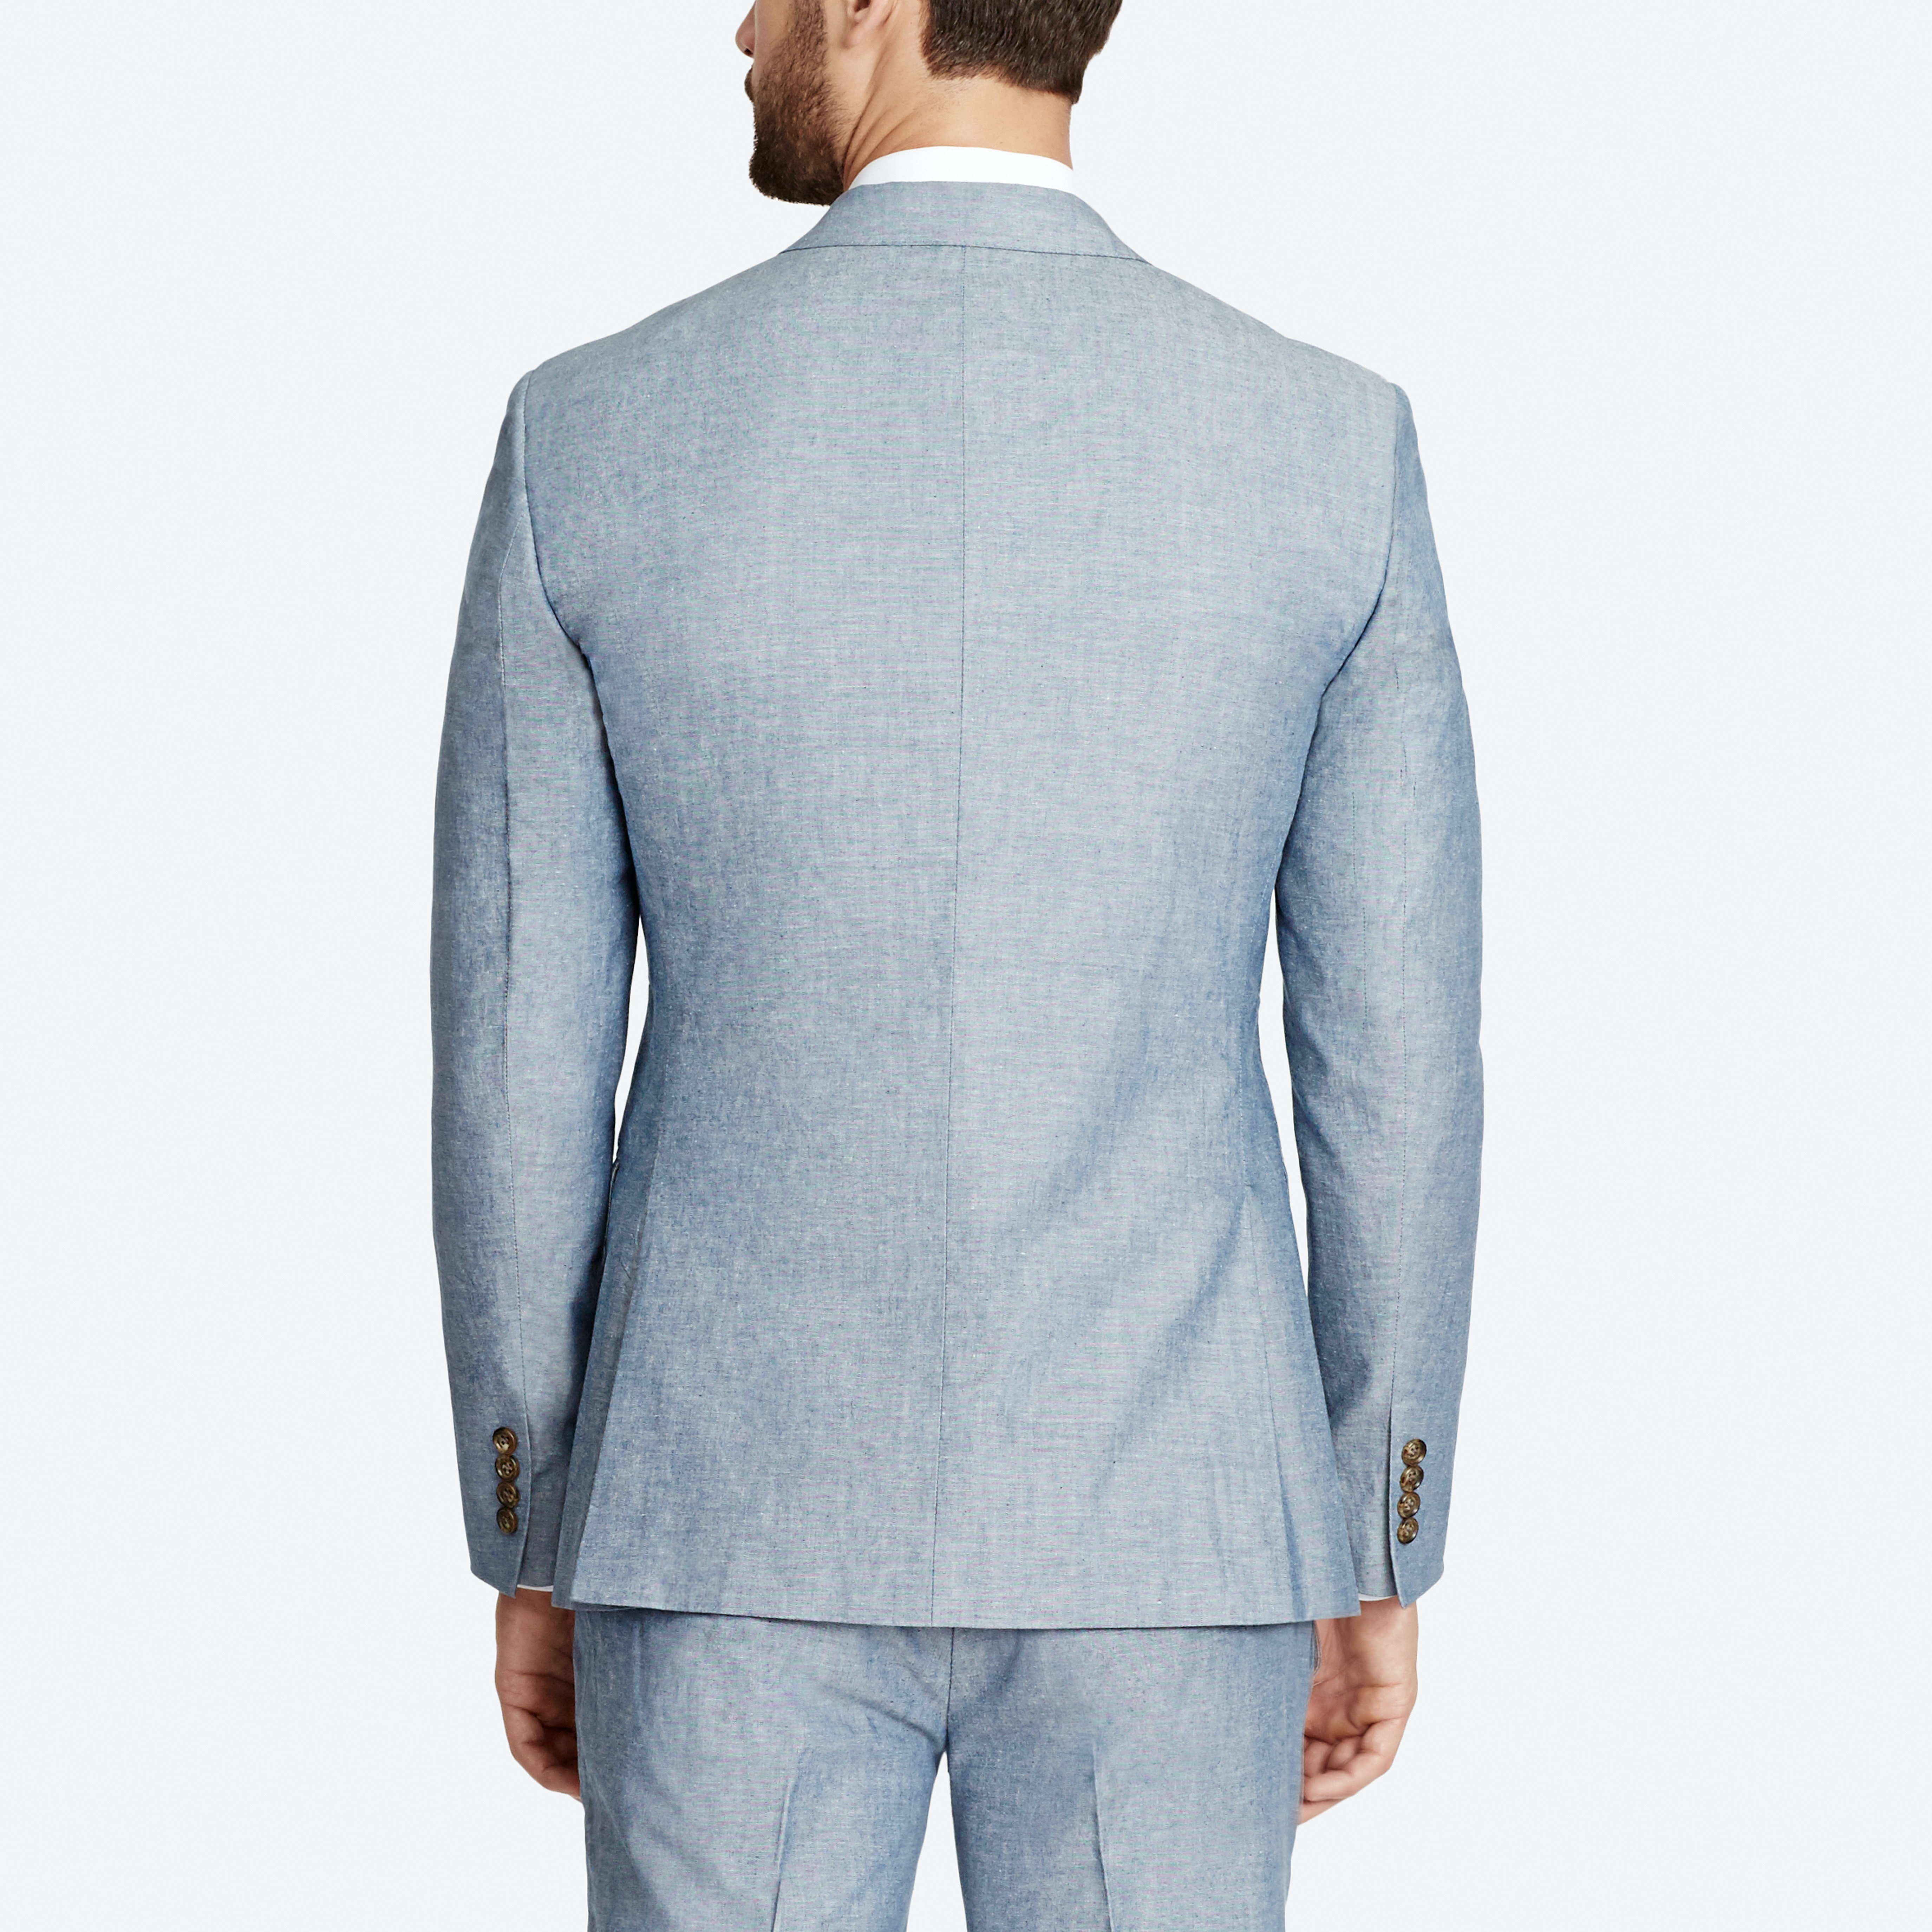 The Foundation Chambray Suit   Bonobos